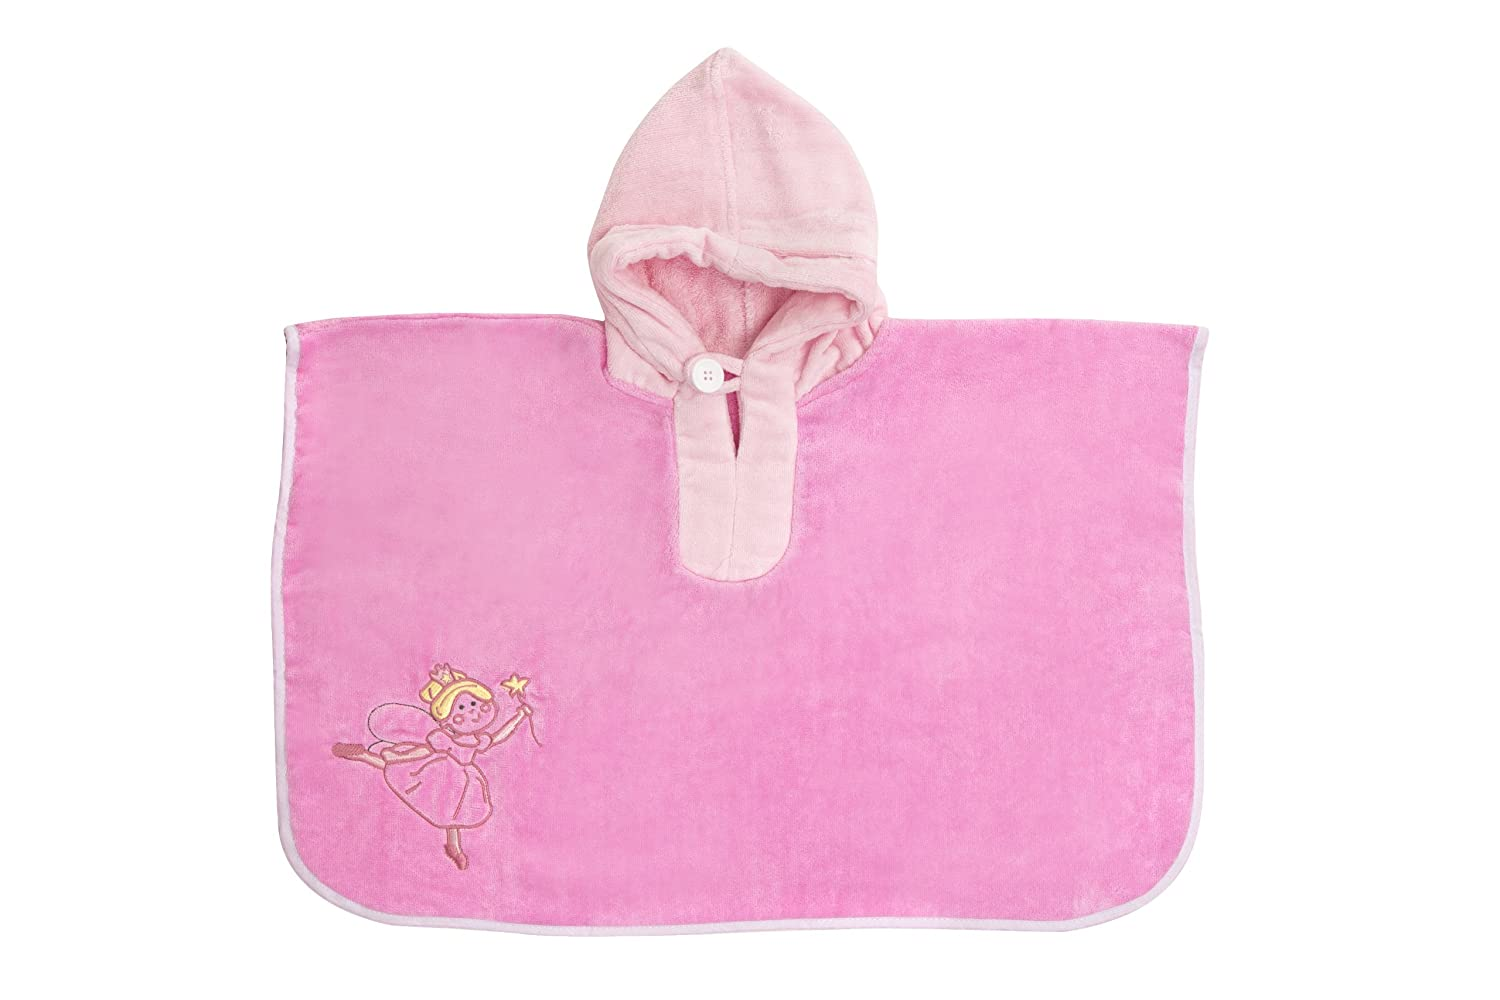 Slumbersafe Baby/Toddler Bath Poncho Towel Pink Fairy PON700-3